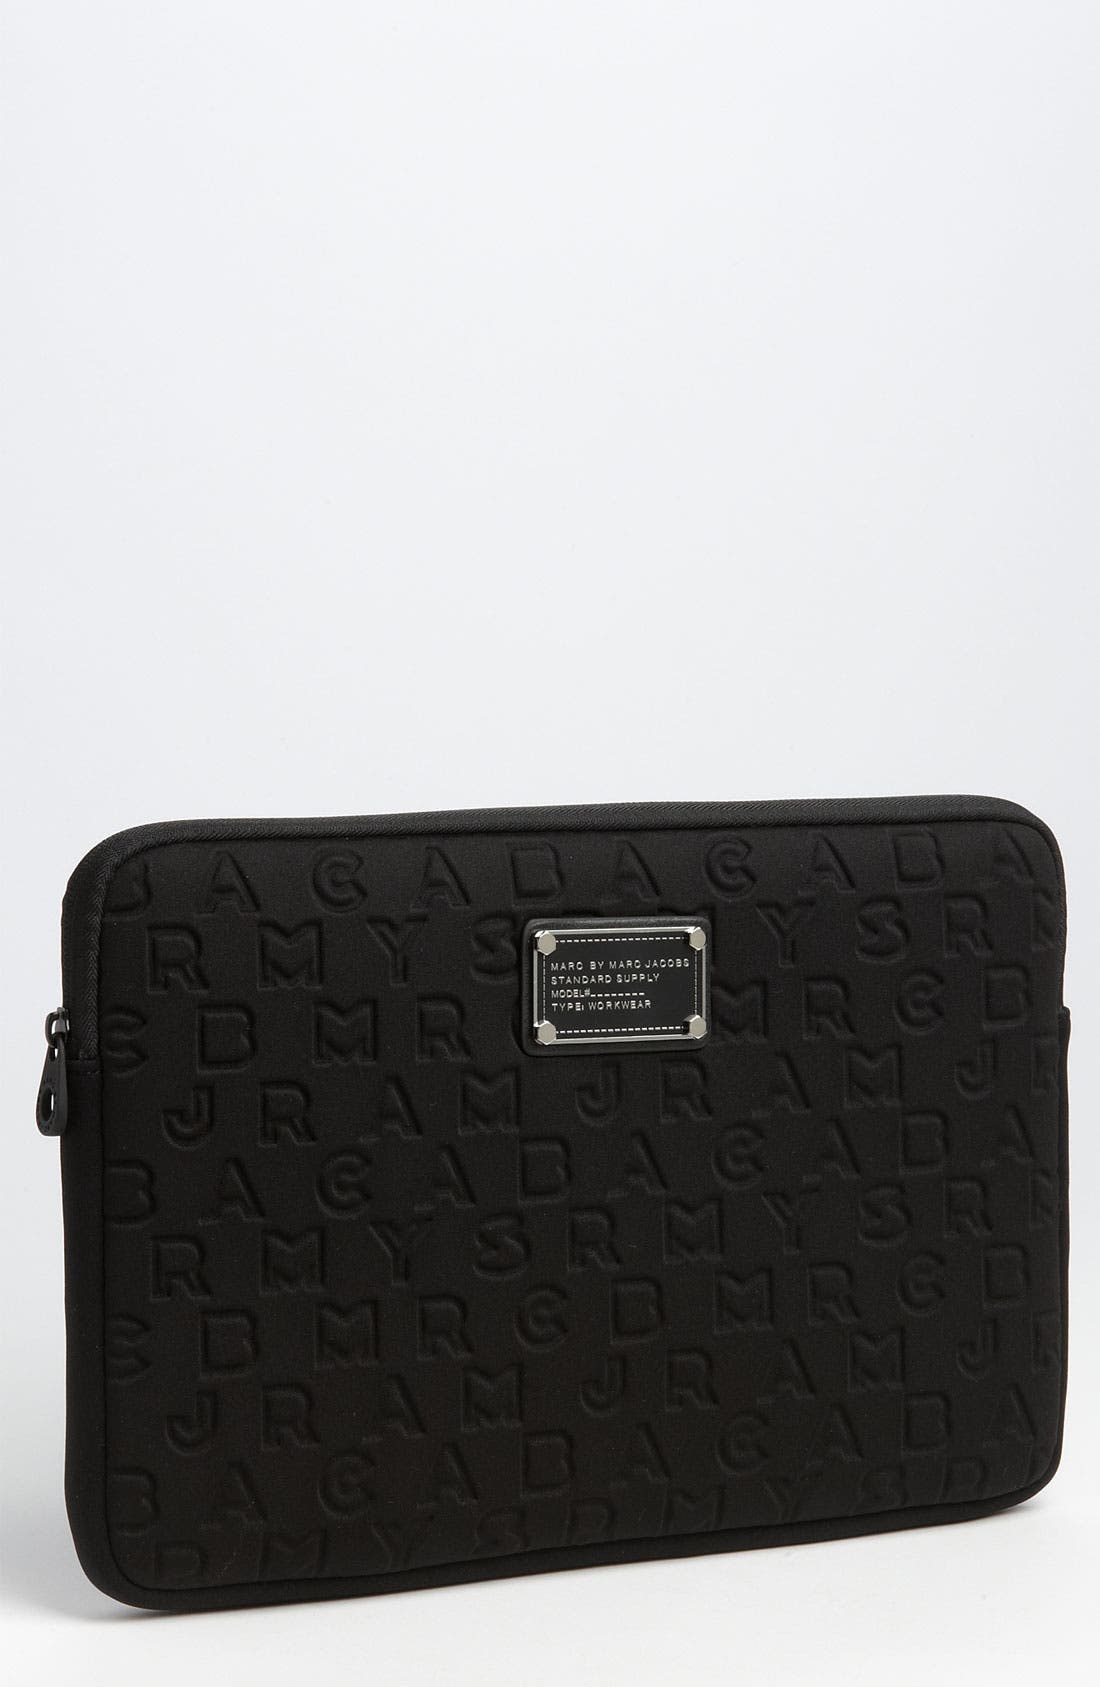 MARC BY MARC JACOBS 'Dreamy' Laptop Sleeve,                             Main thumbnail 1, color,                             001